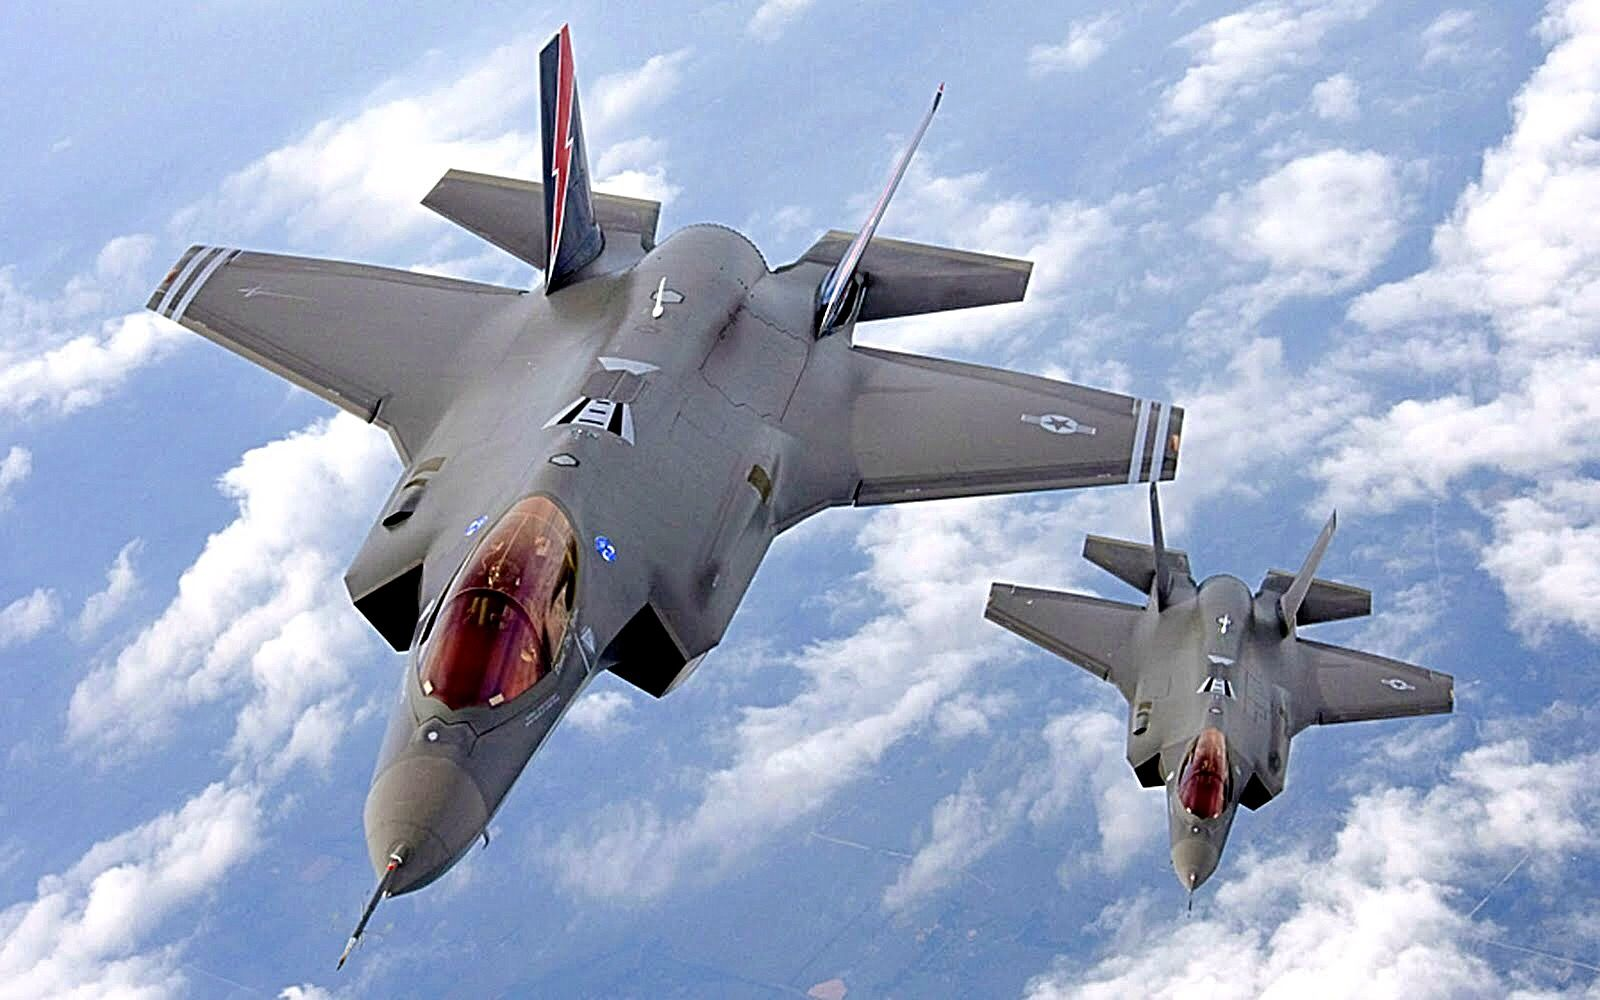 Air Force 1 F35 Fighter jets, Aircraft, Fighter aircraft